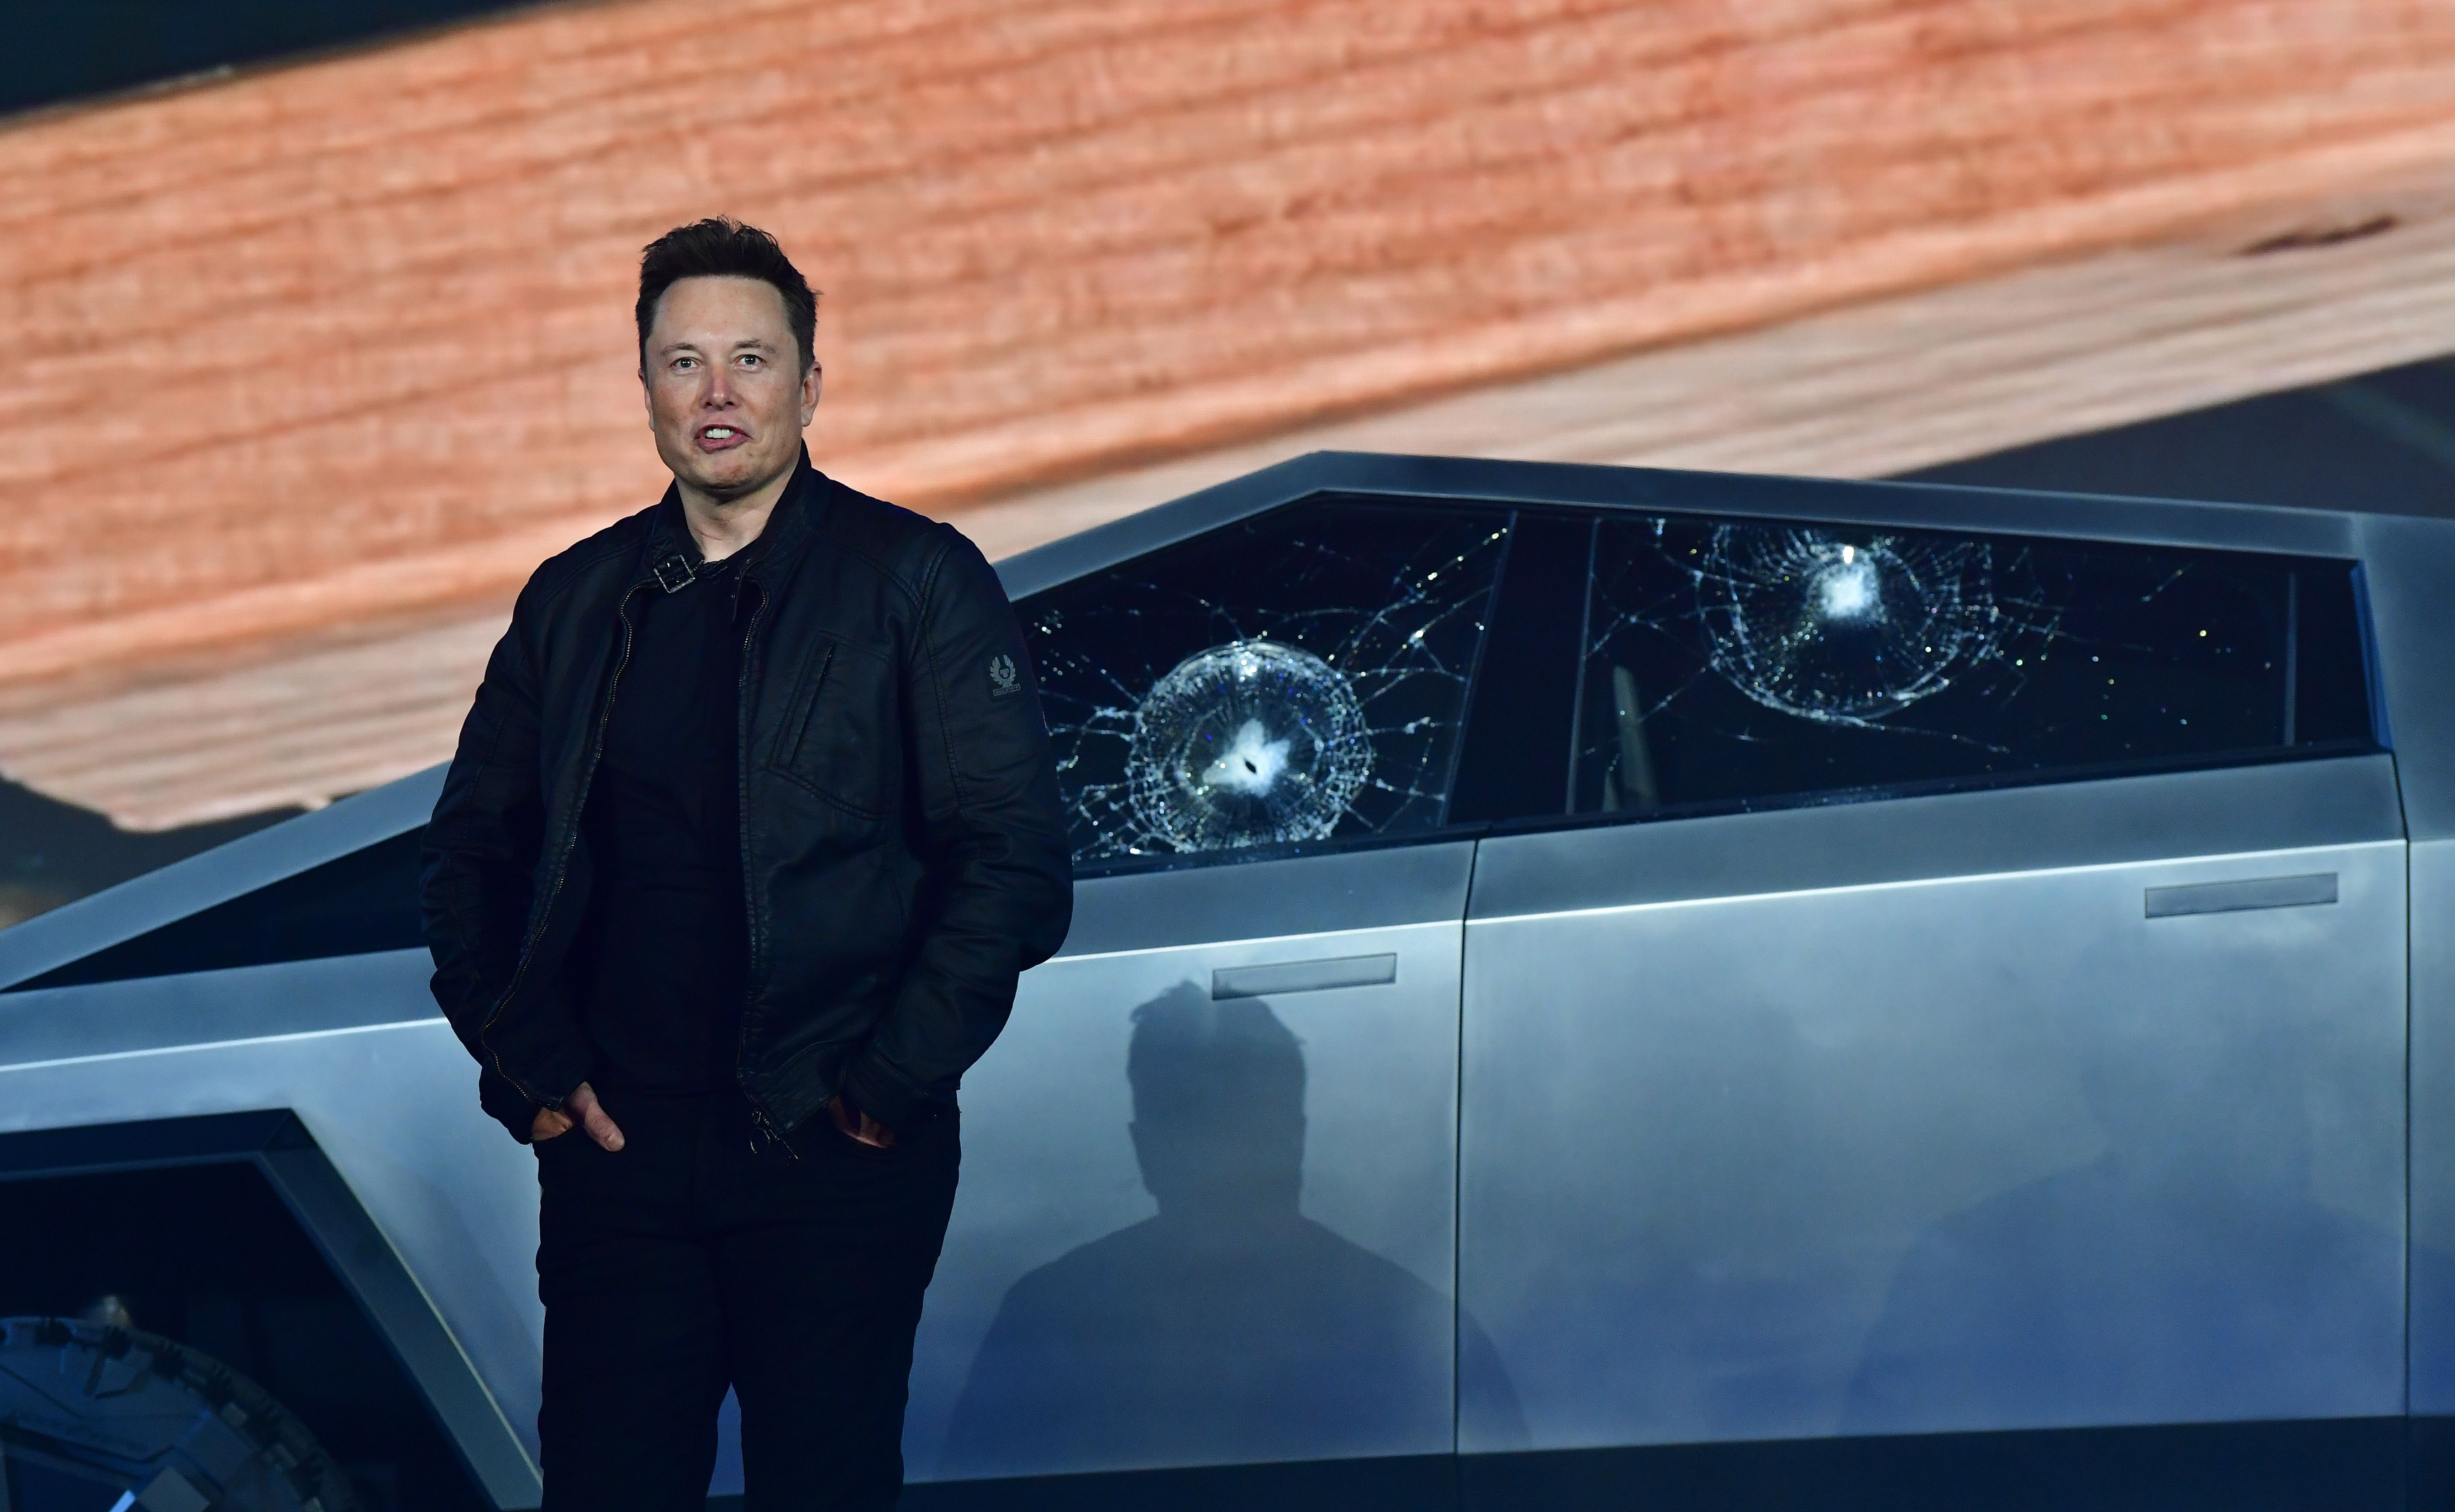 Elon Musk Introduces, Immediately Tries to Destroy $40,000 Cybertruck